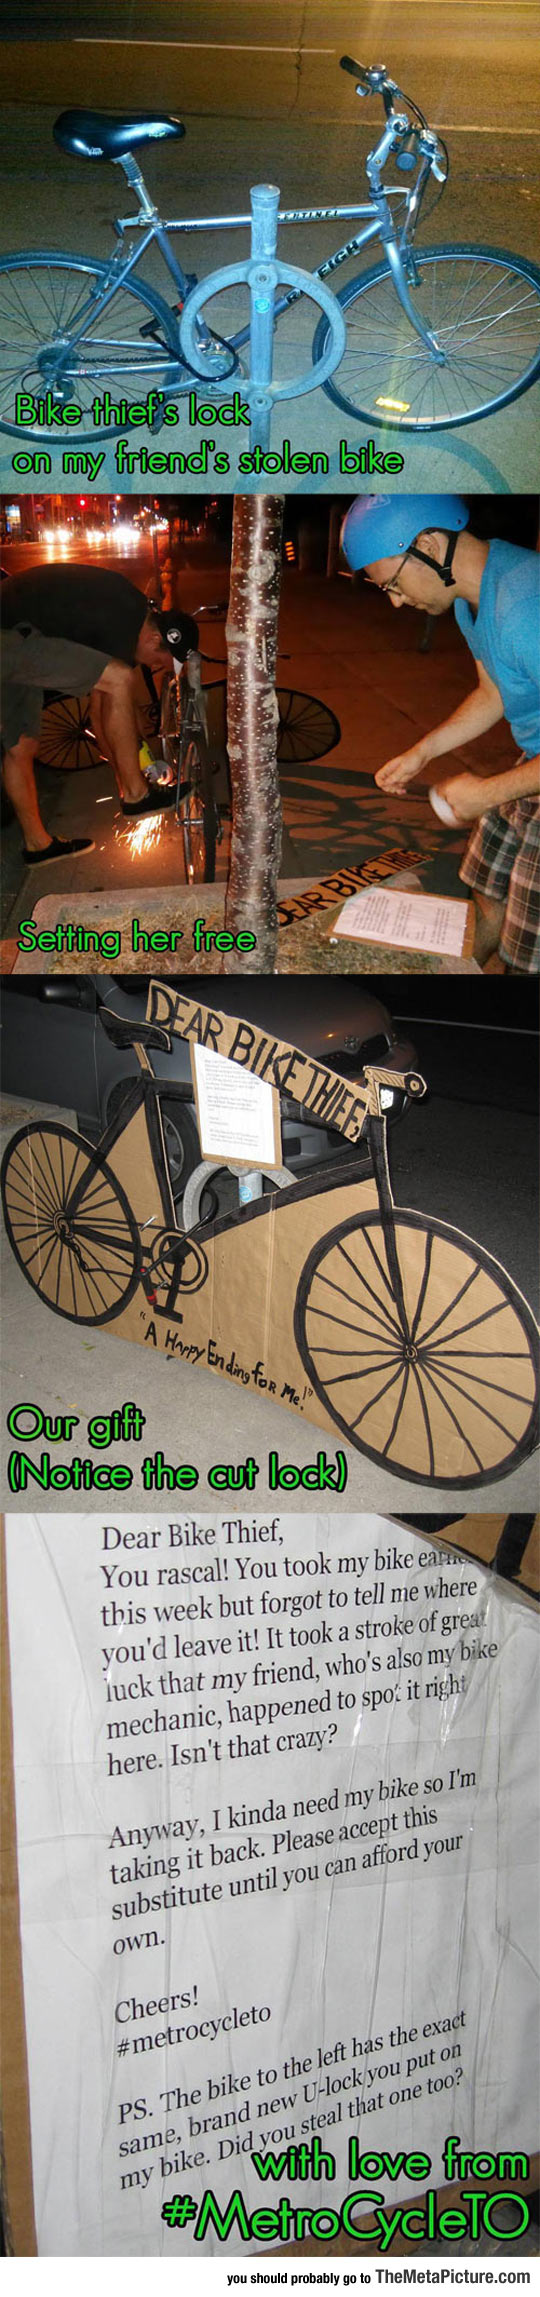 How To Properly Deal With A Bike Thief